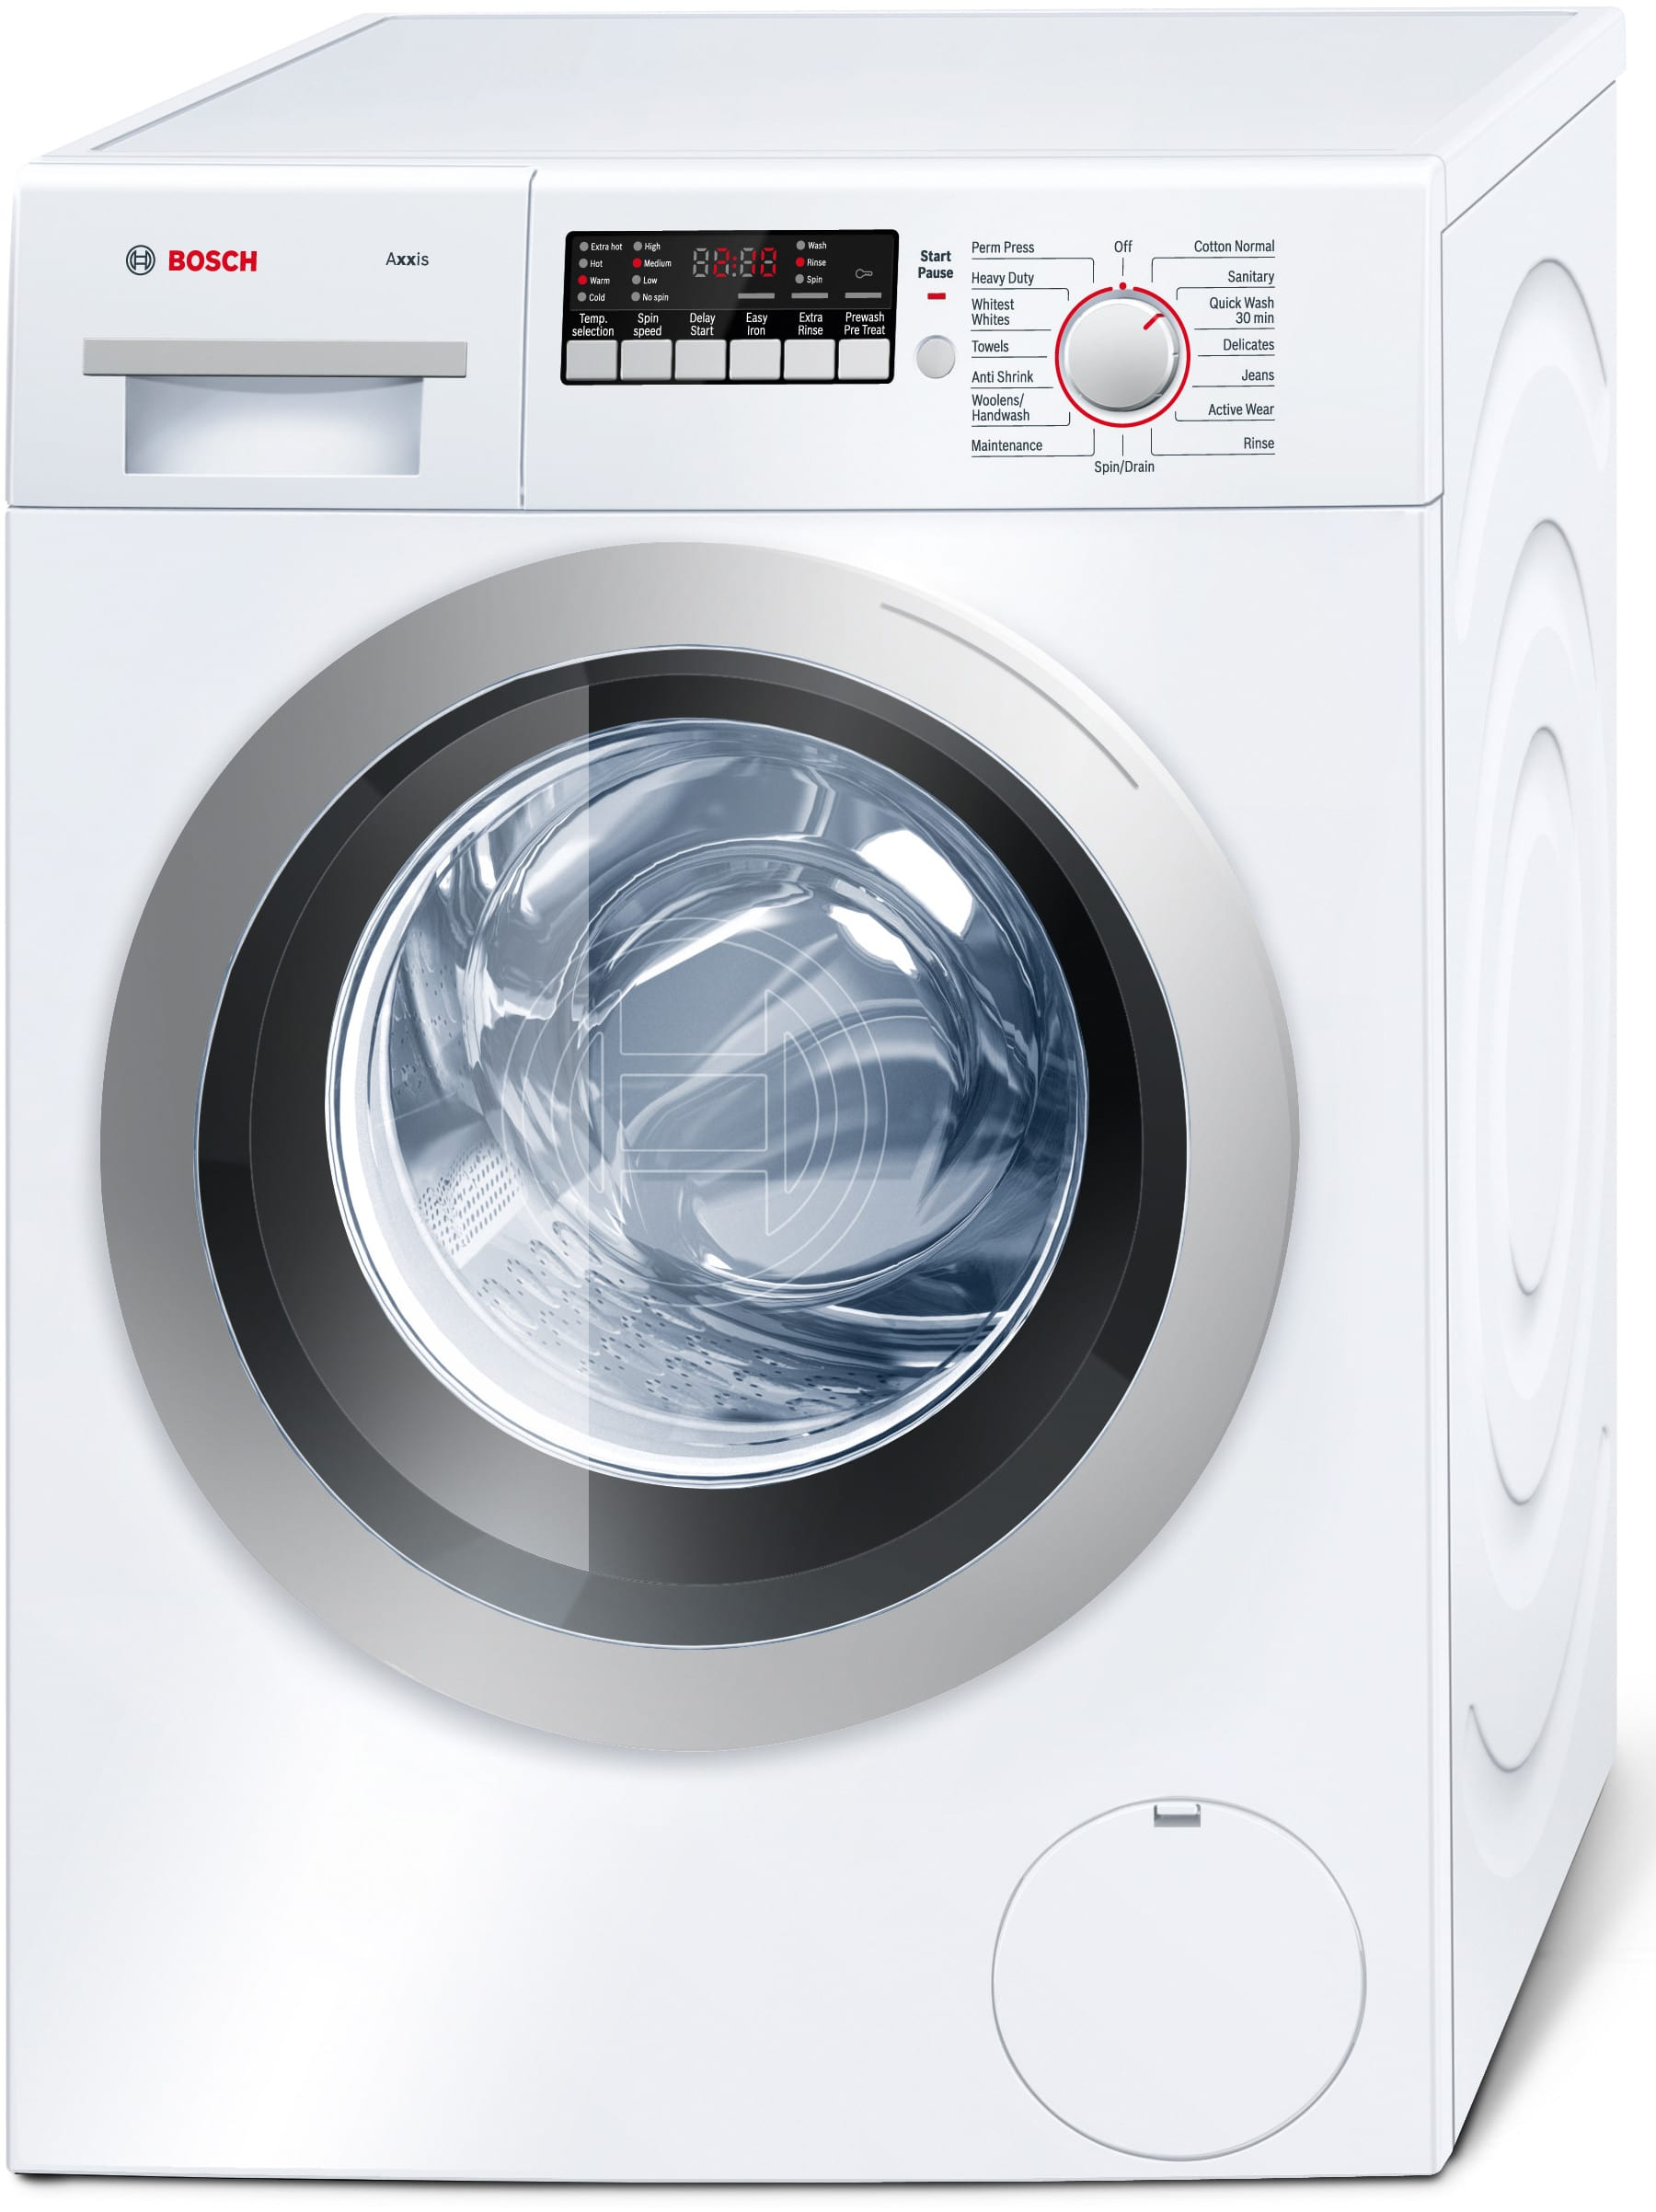 Miele stackable washer dryer ventless - Front Load Washer With 15 Wash Cycles 1 200 Rpm Quick Wash Aquashield System Antishrink Cycle Easyiron Option And Energy Star Qualification